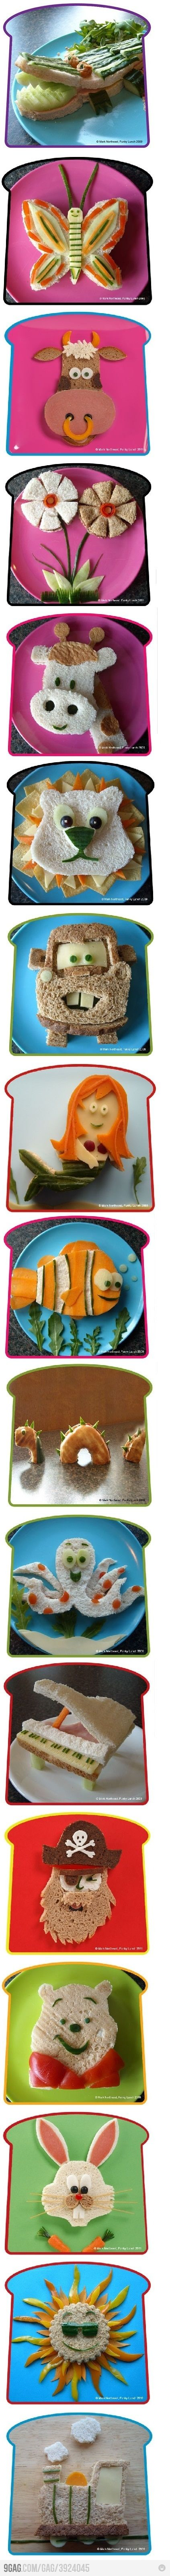 So cute! Sandwich shapes